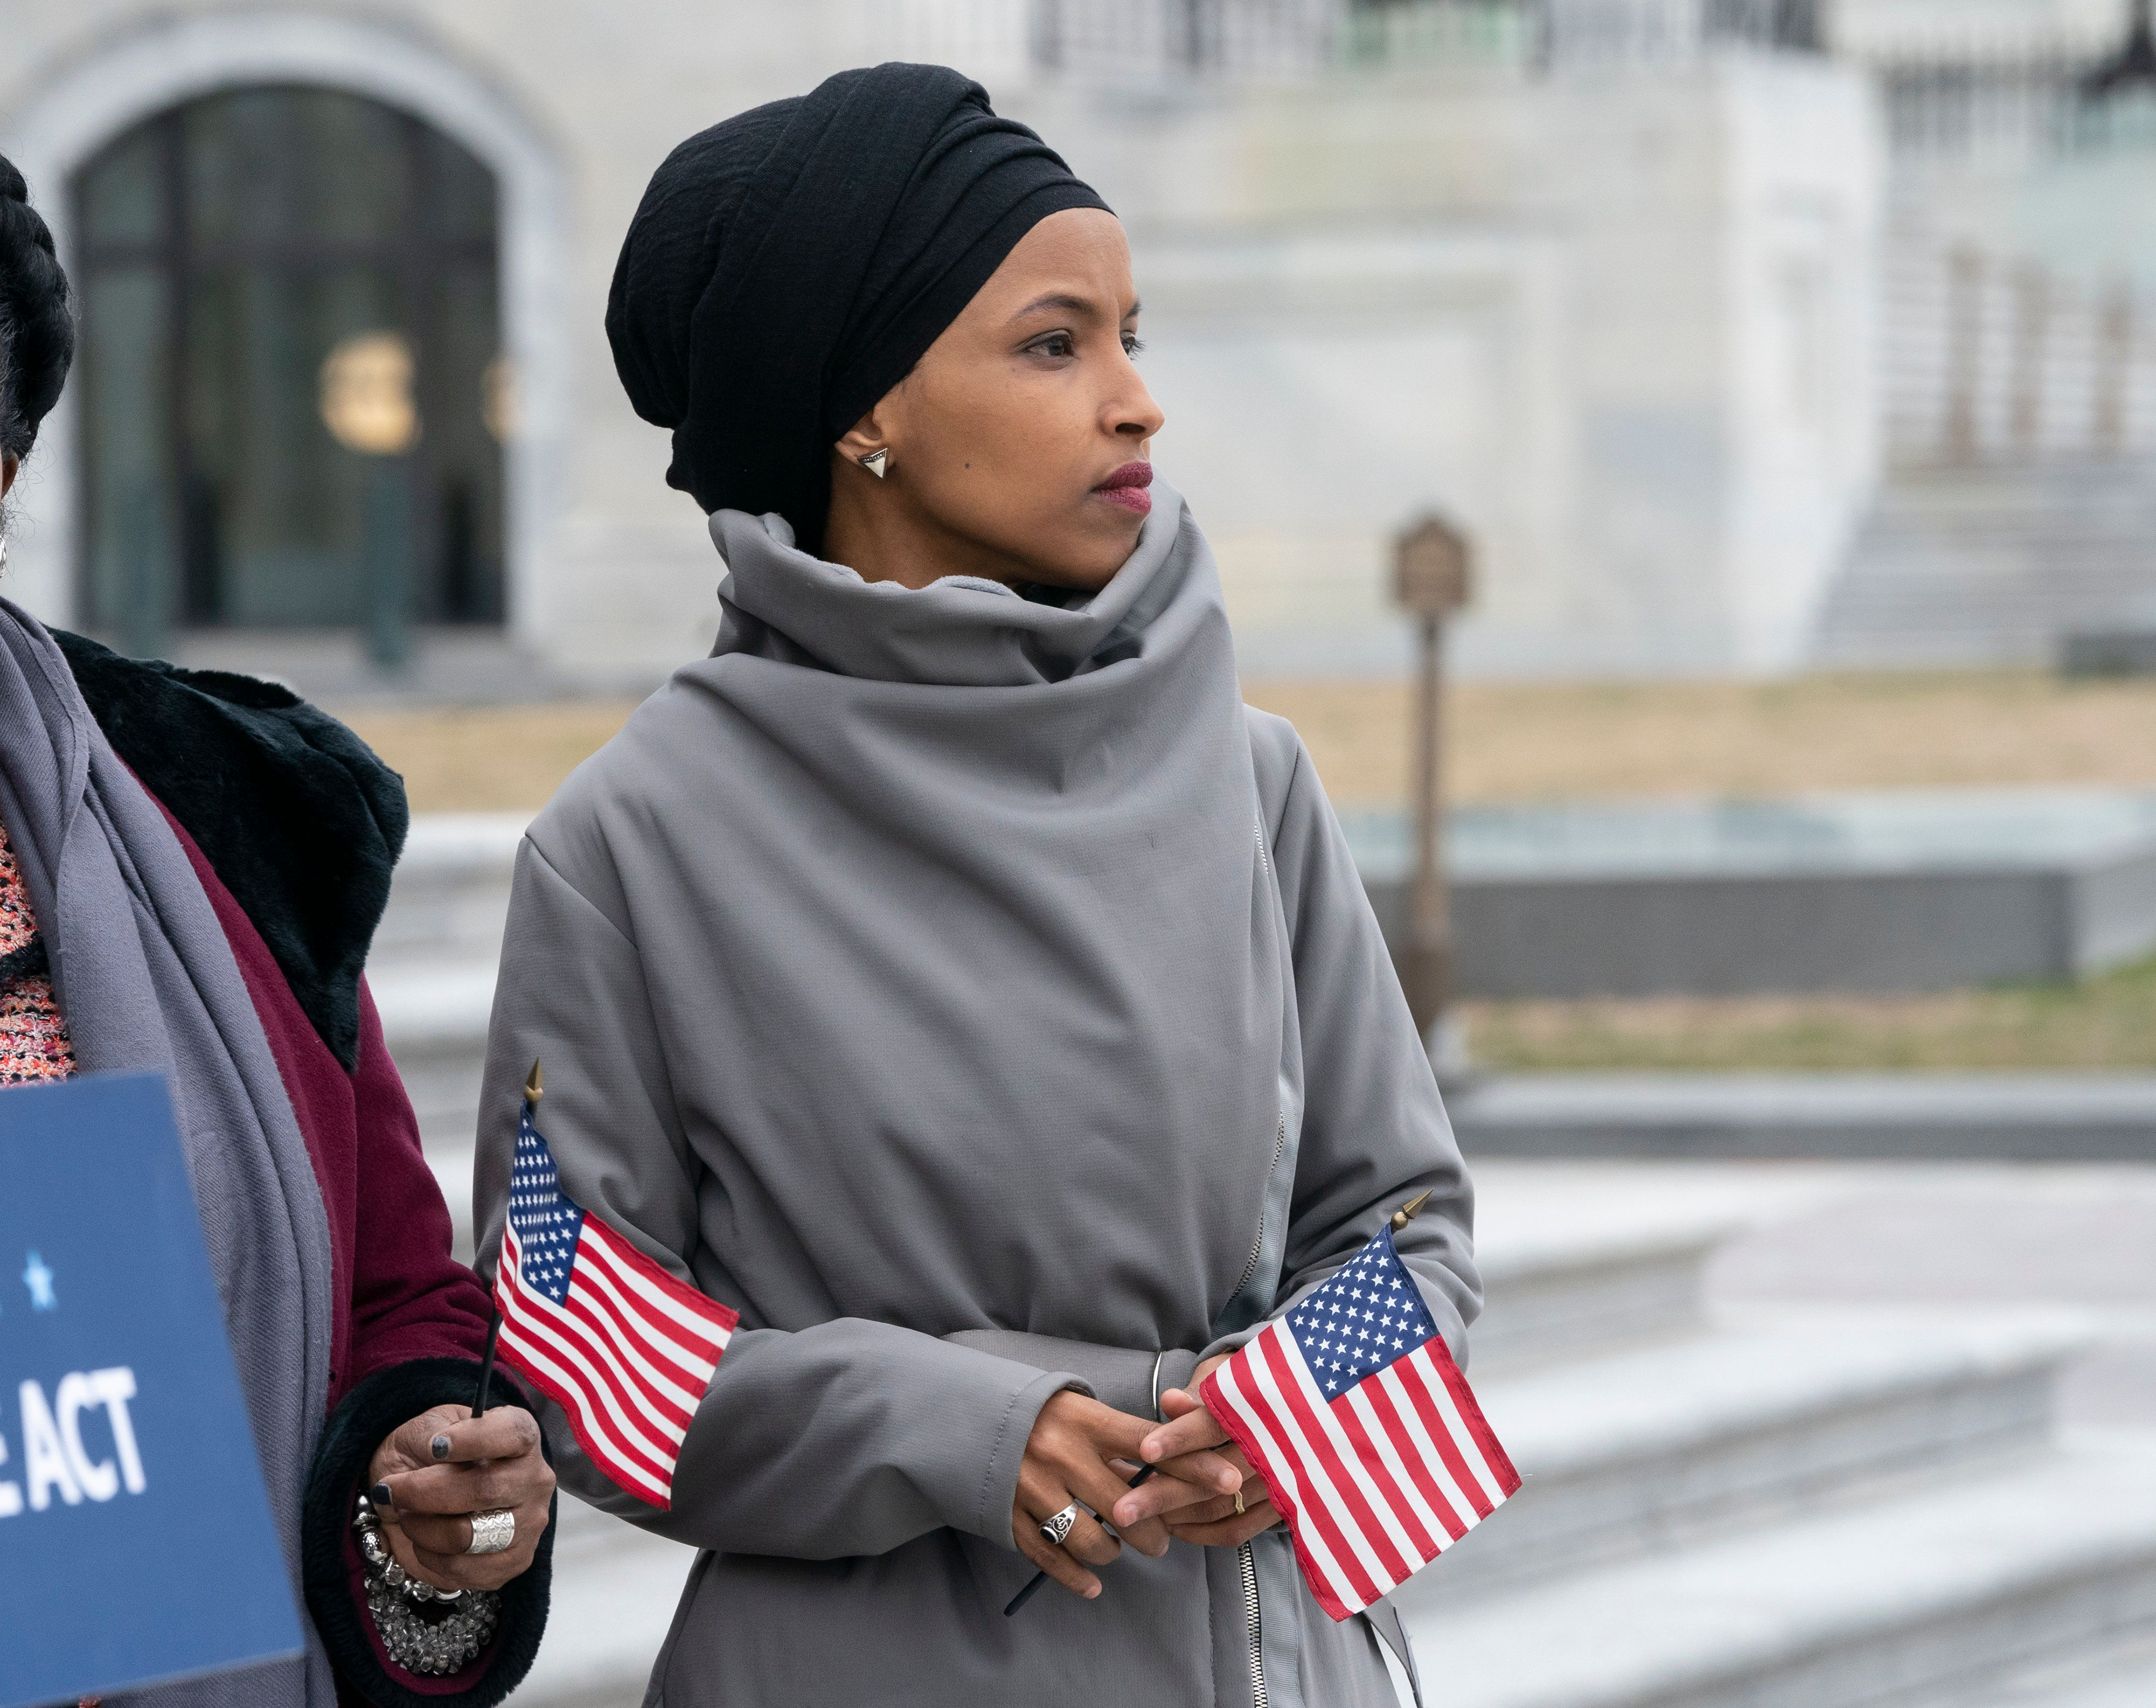 Rep. Ilhan Omar Wanted To Discuss Palestine. Here's What's Happened There Since.